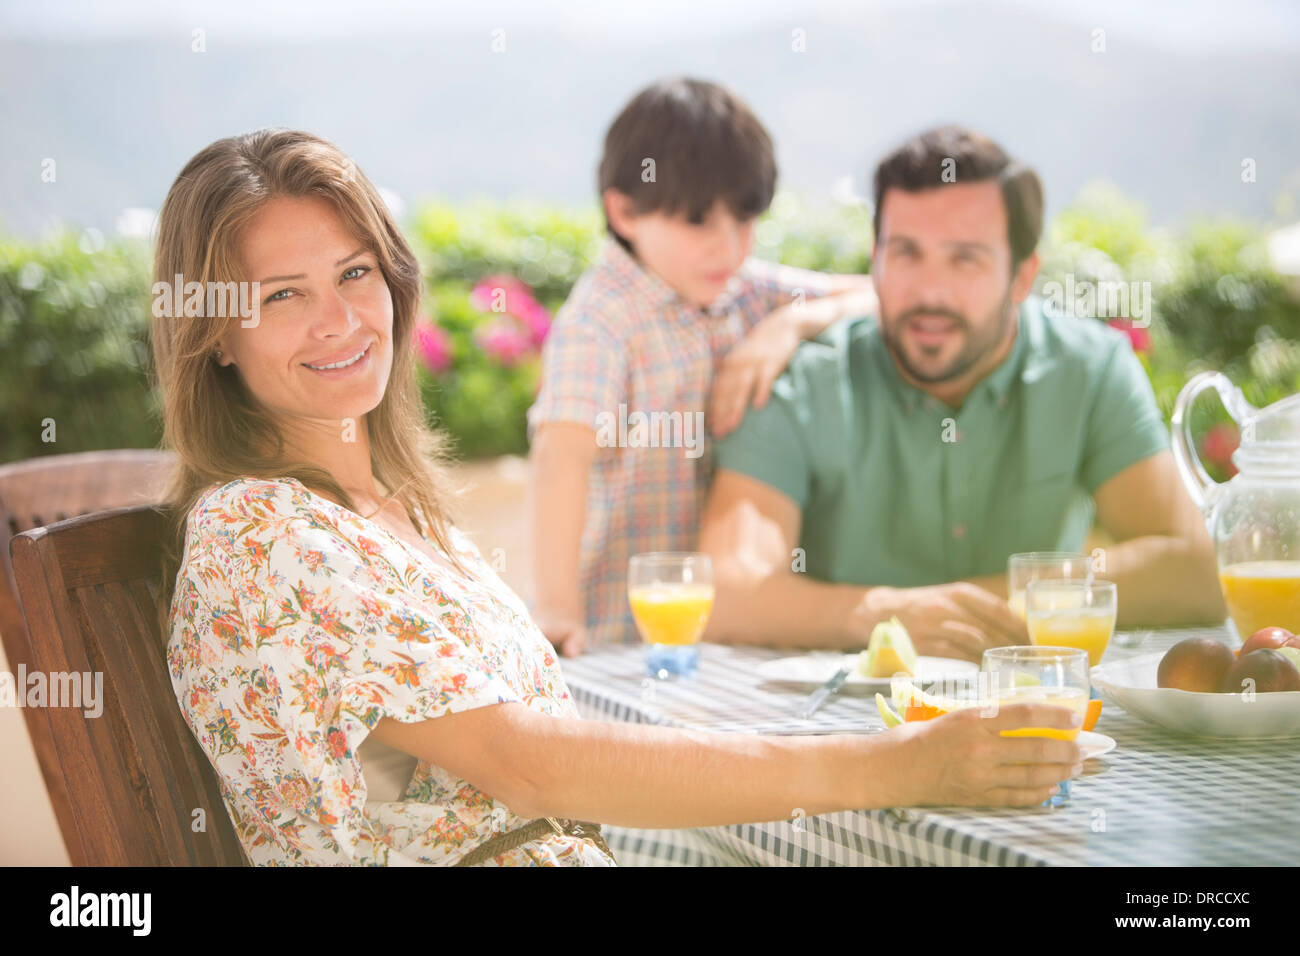 Woman smiling at patio table - Stock Image